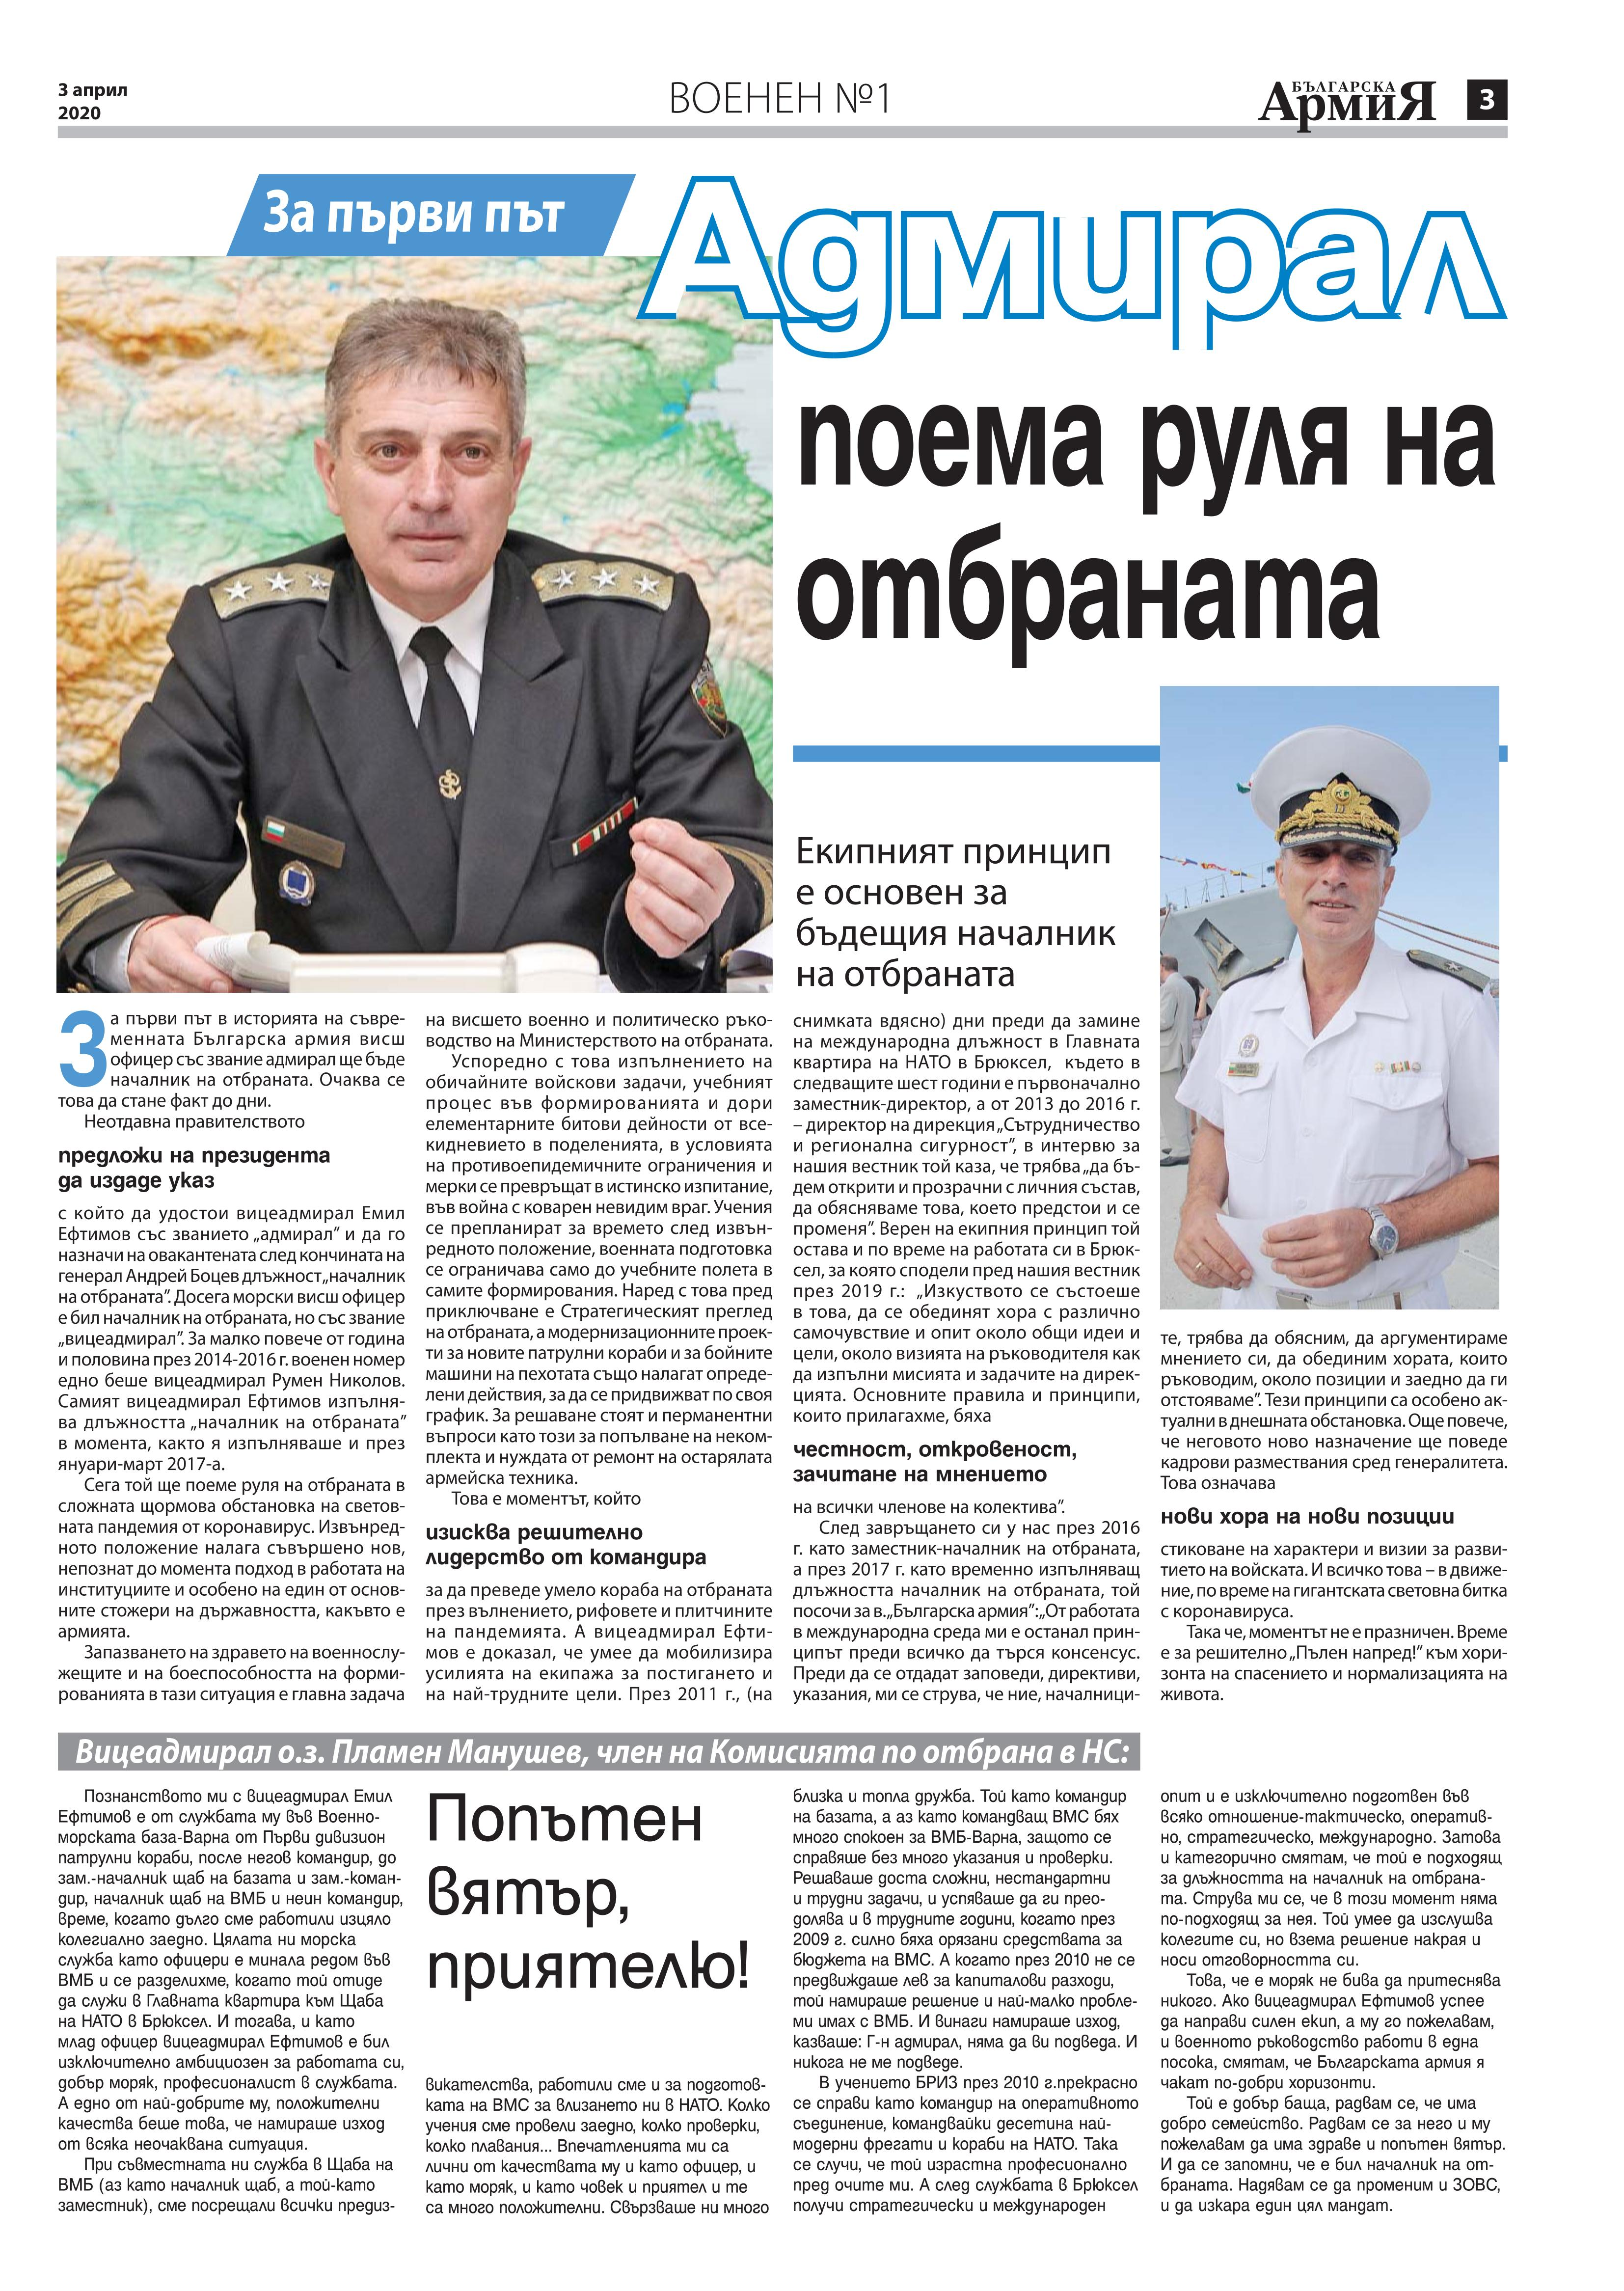 https://www.armymedia.bg/wp-content/uploads/2015/06/03.page1_-130.jpg